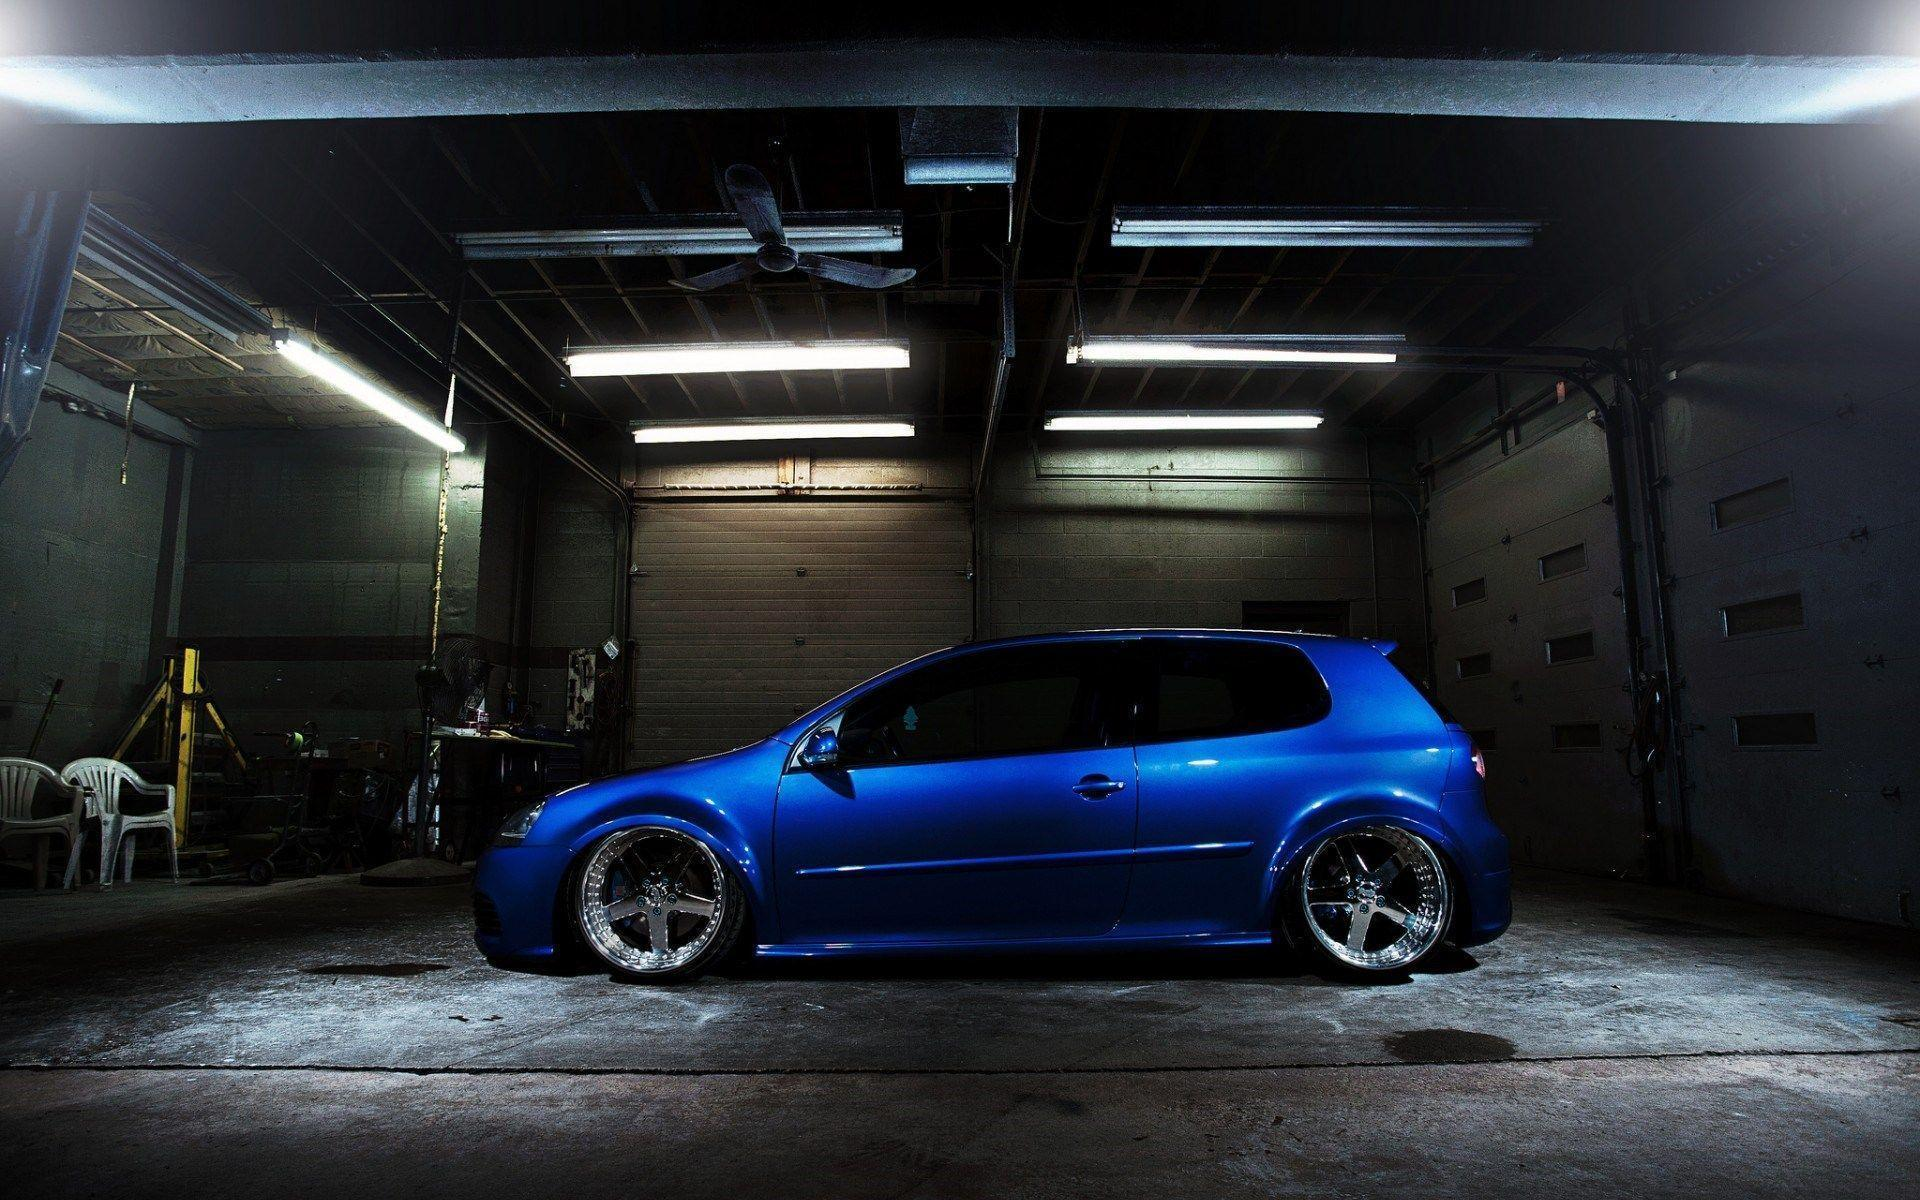 Volkswagen Golf GTI Blue HD Wallpaper - FreeHDWalls